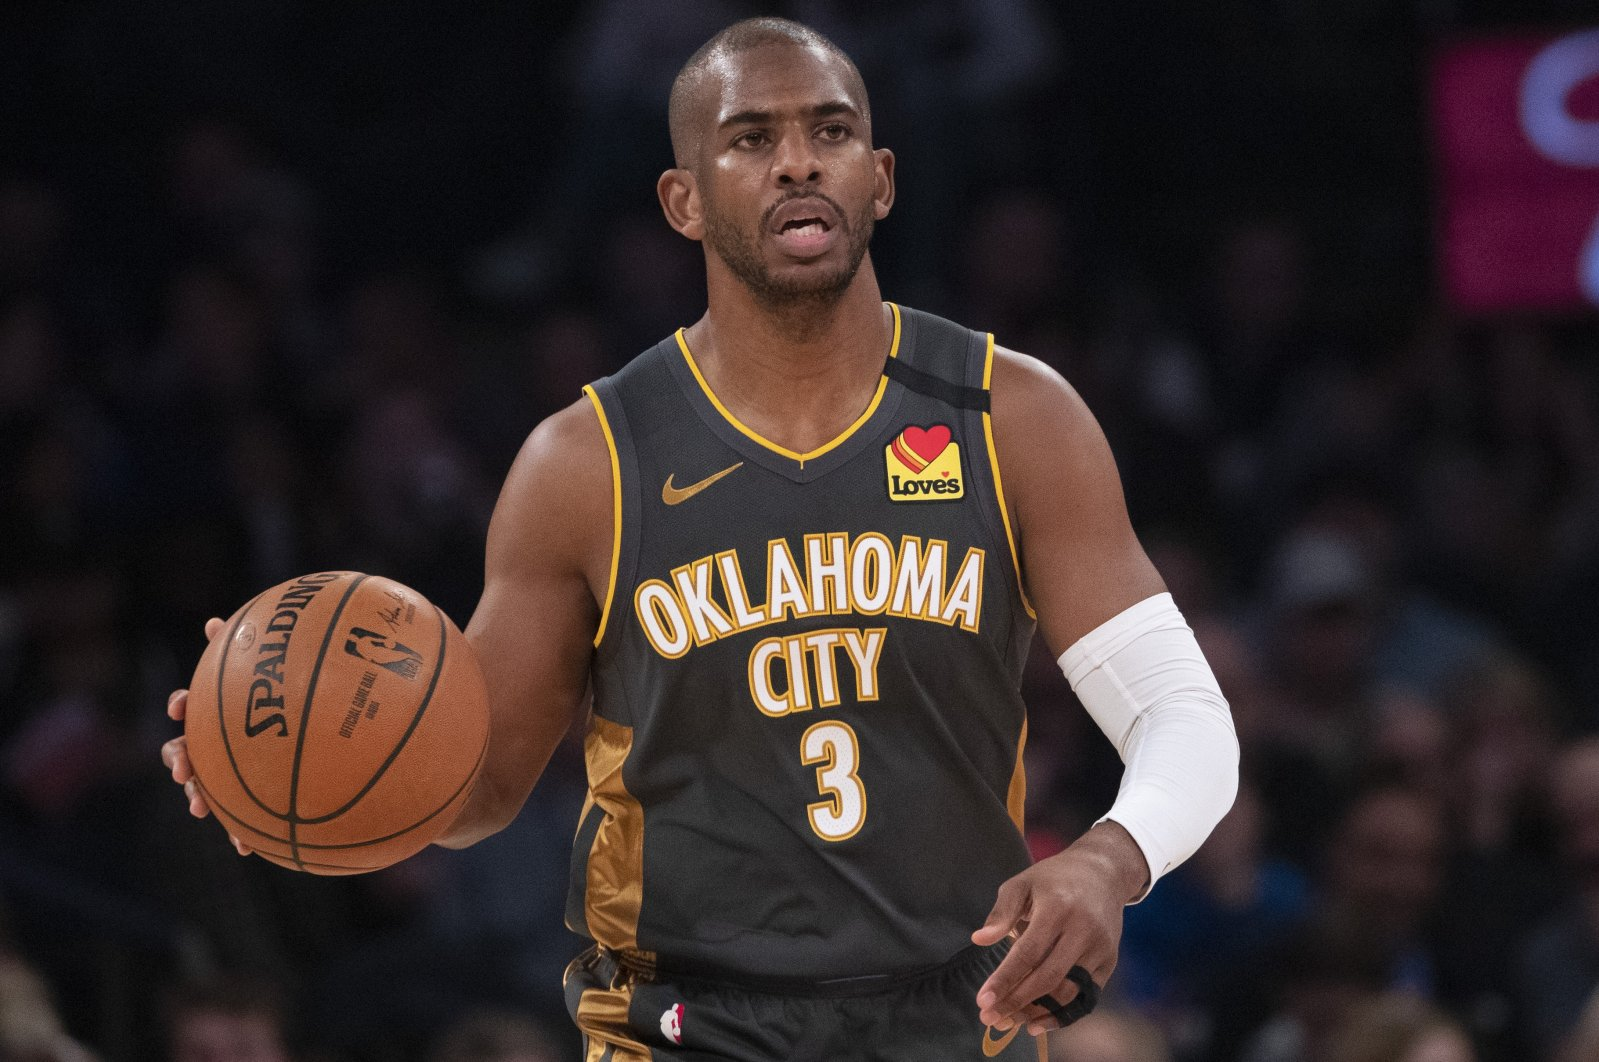 Oklahoma City Thunder's Chris Paul handles the ball during an NBA game against the New York Knicks, in New York City, New York, U.S., March 6, 2020. (AP Photo)